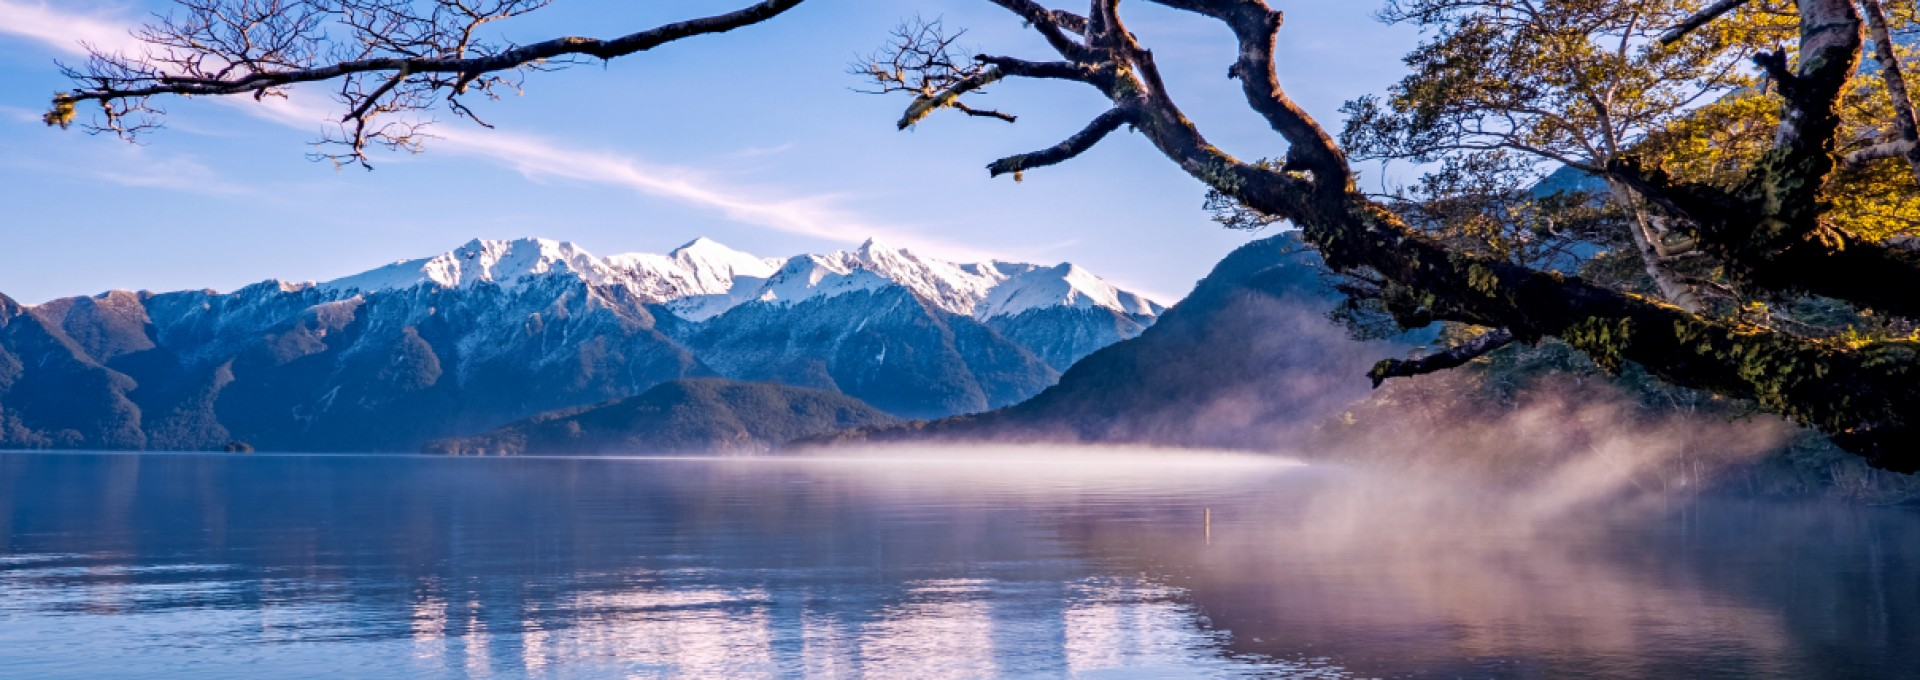 Lake Hauroko is the deepest lake in New Zealand